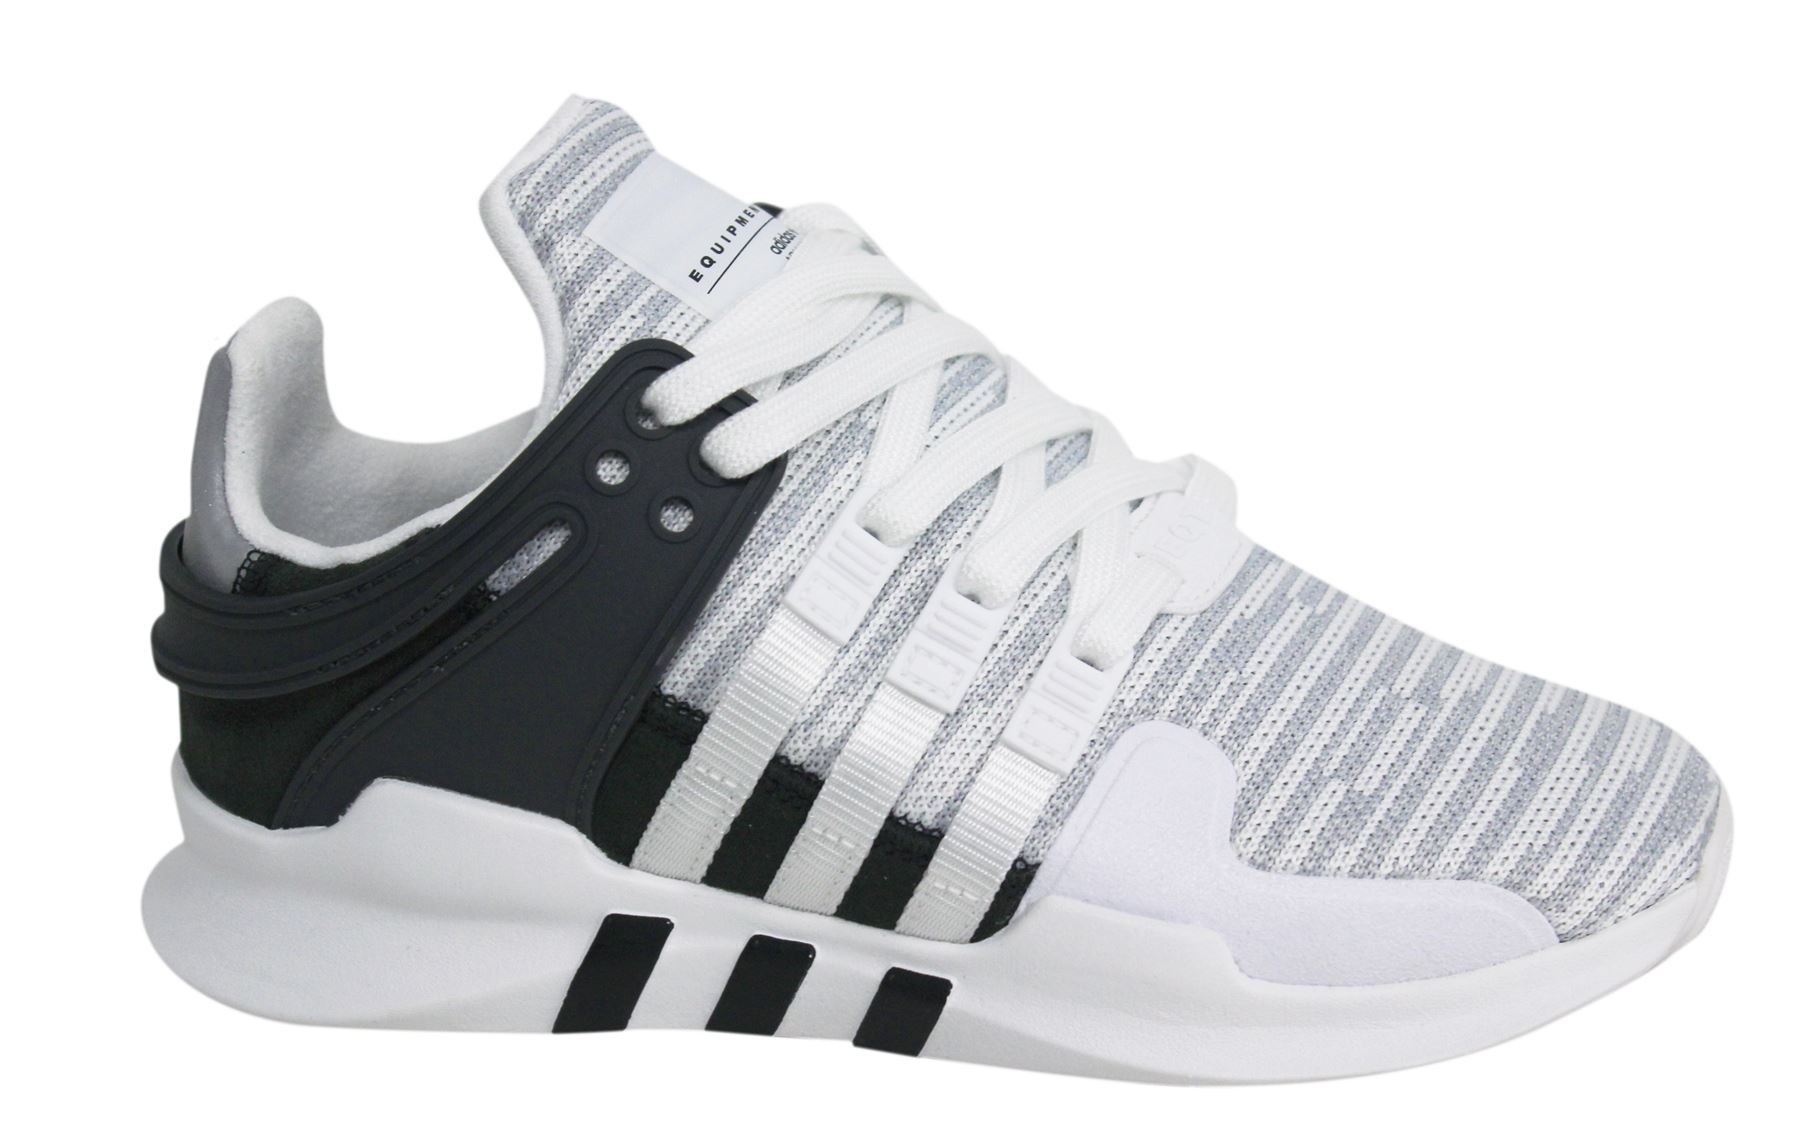 052dff9b72f1 ... clearance adidas eqt support adv lace up white black textile mens  trainers bb1296 d8 755e4 ea8c3